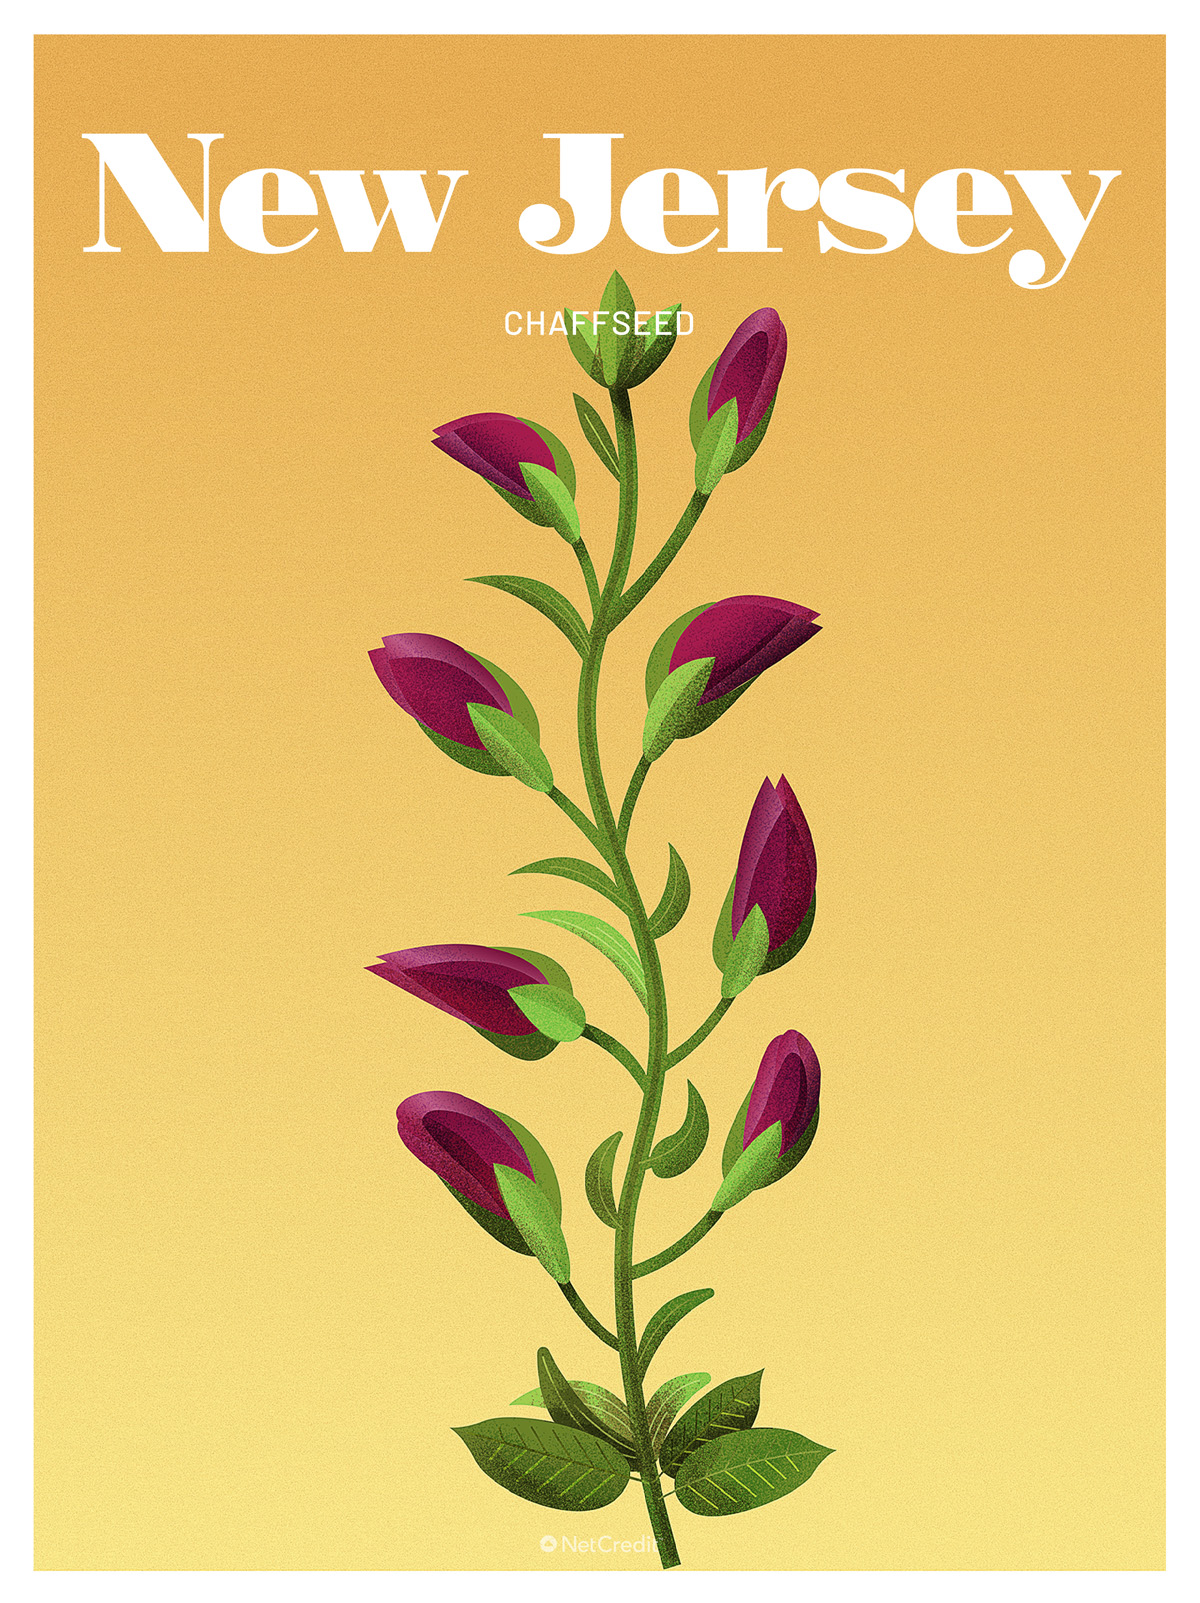 Endangered Plant in New Jersey: Chaffseed